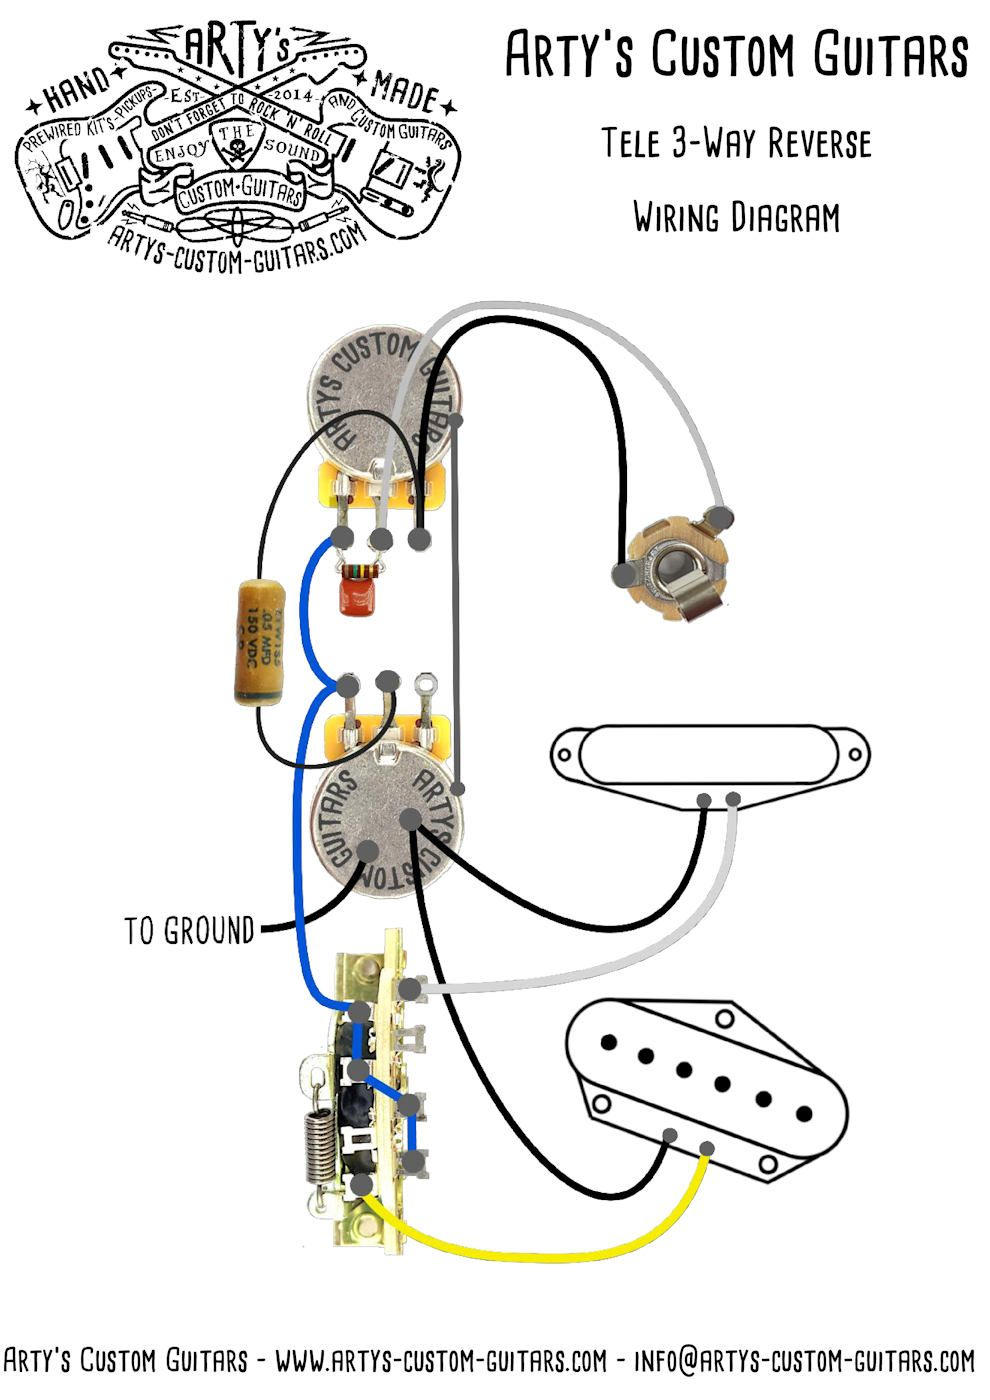 hight resolution of telecaster 3 way reverse wiring diagram arty s custom guitars